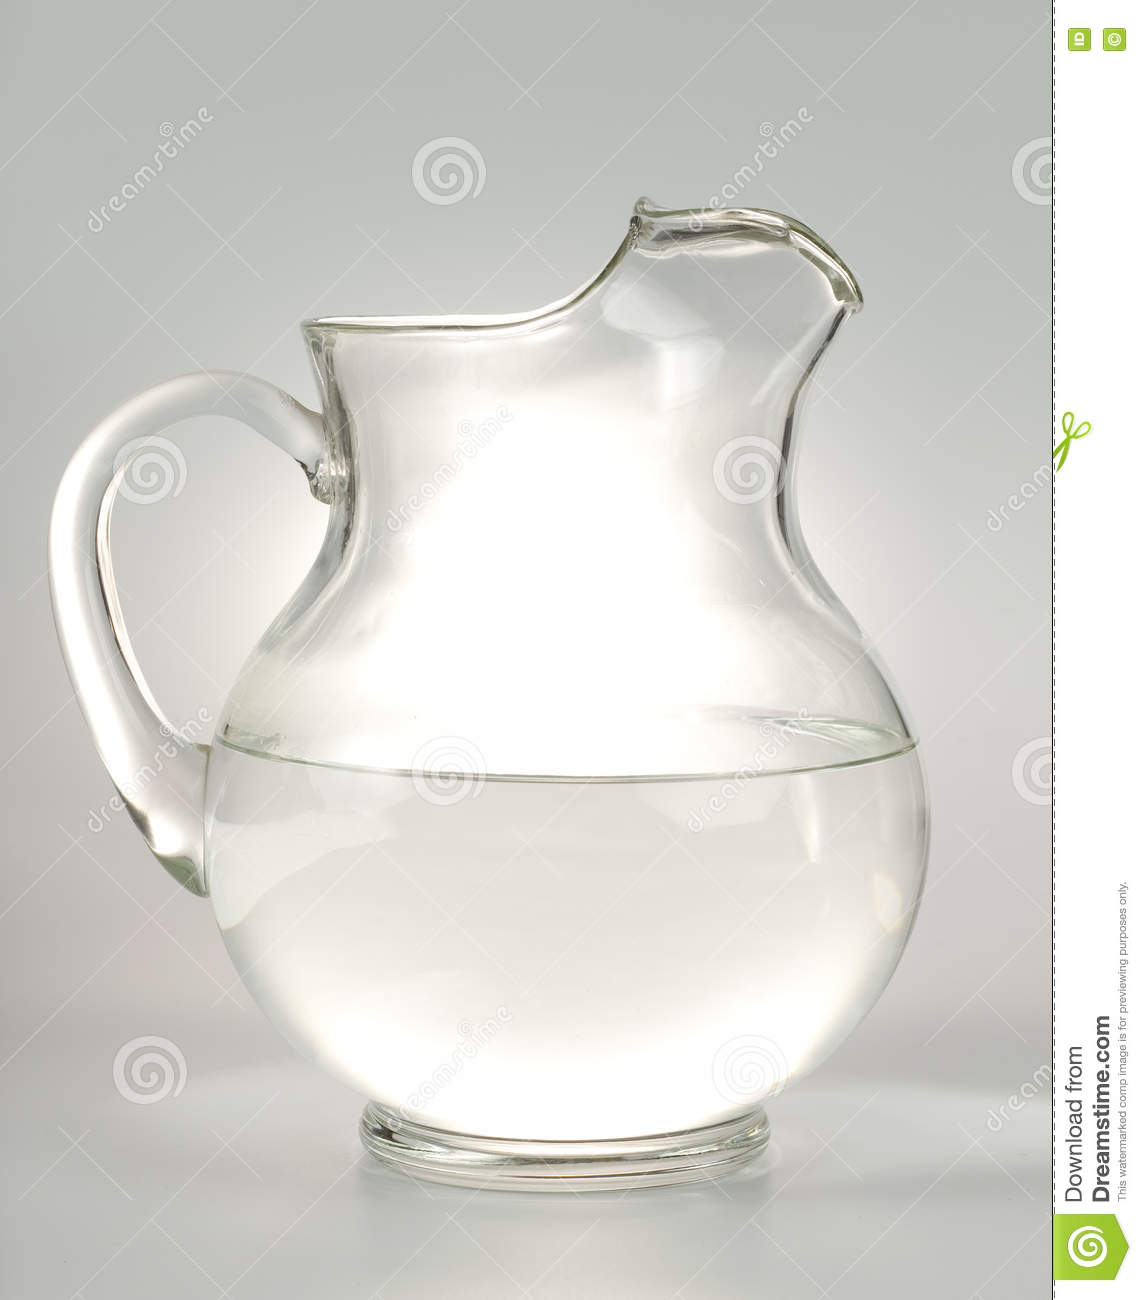 glass water pitcher stock photo  image  - glass water pitcher